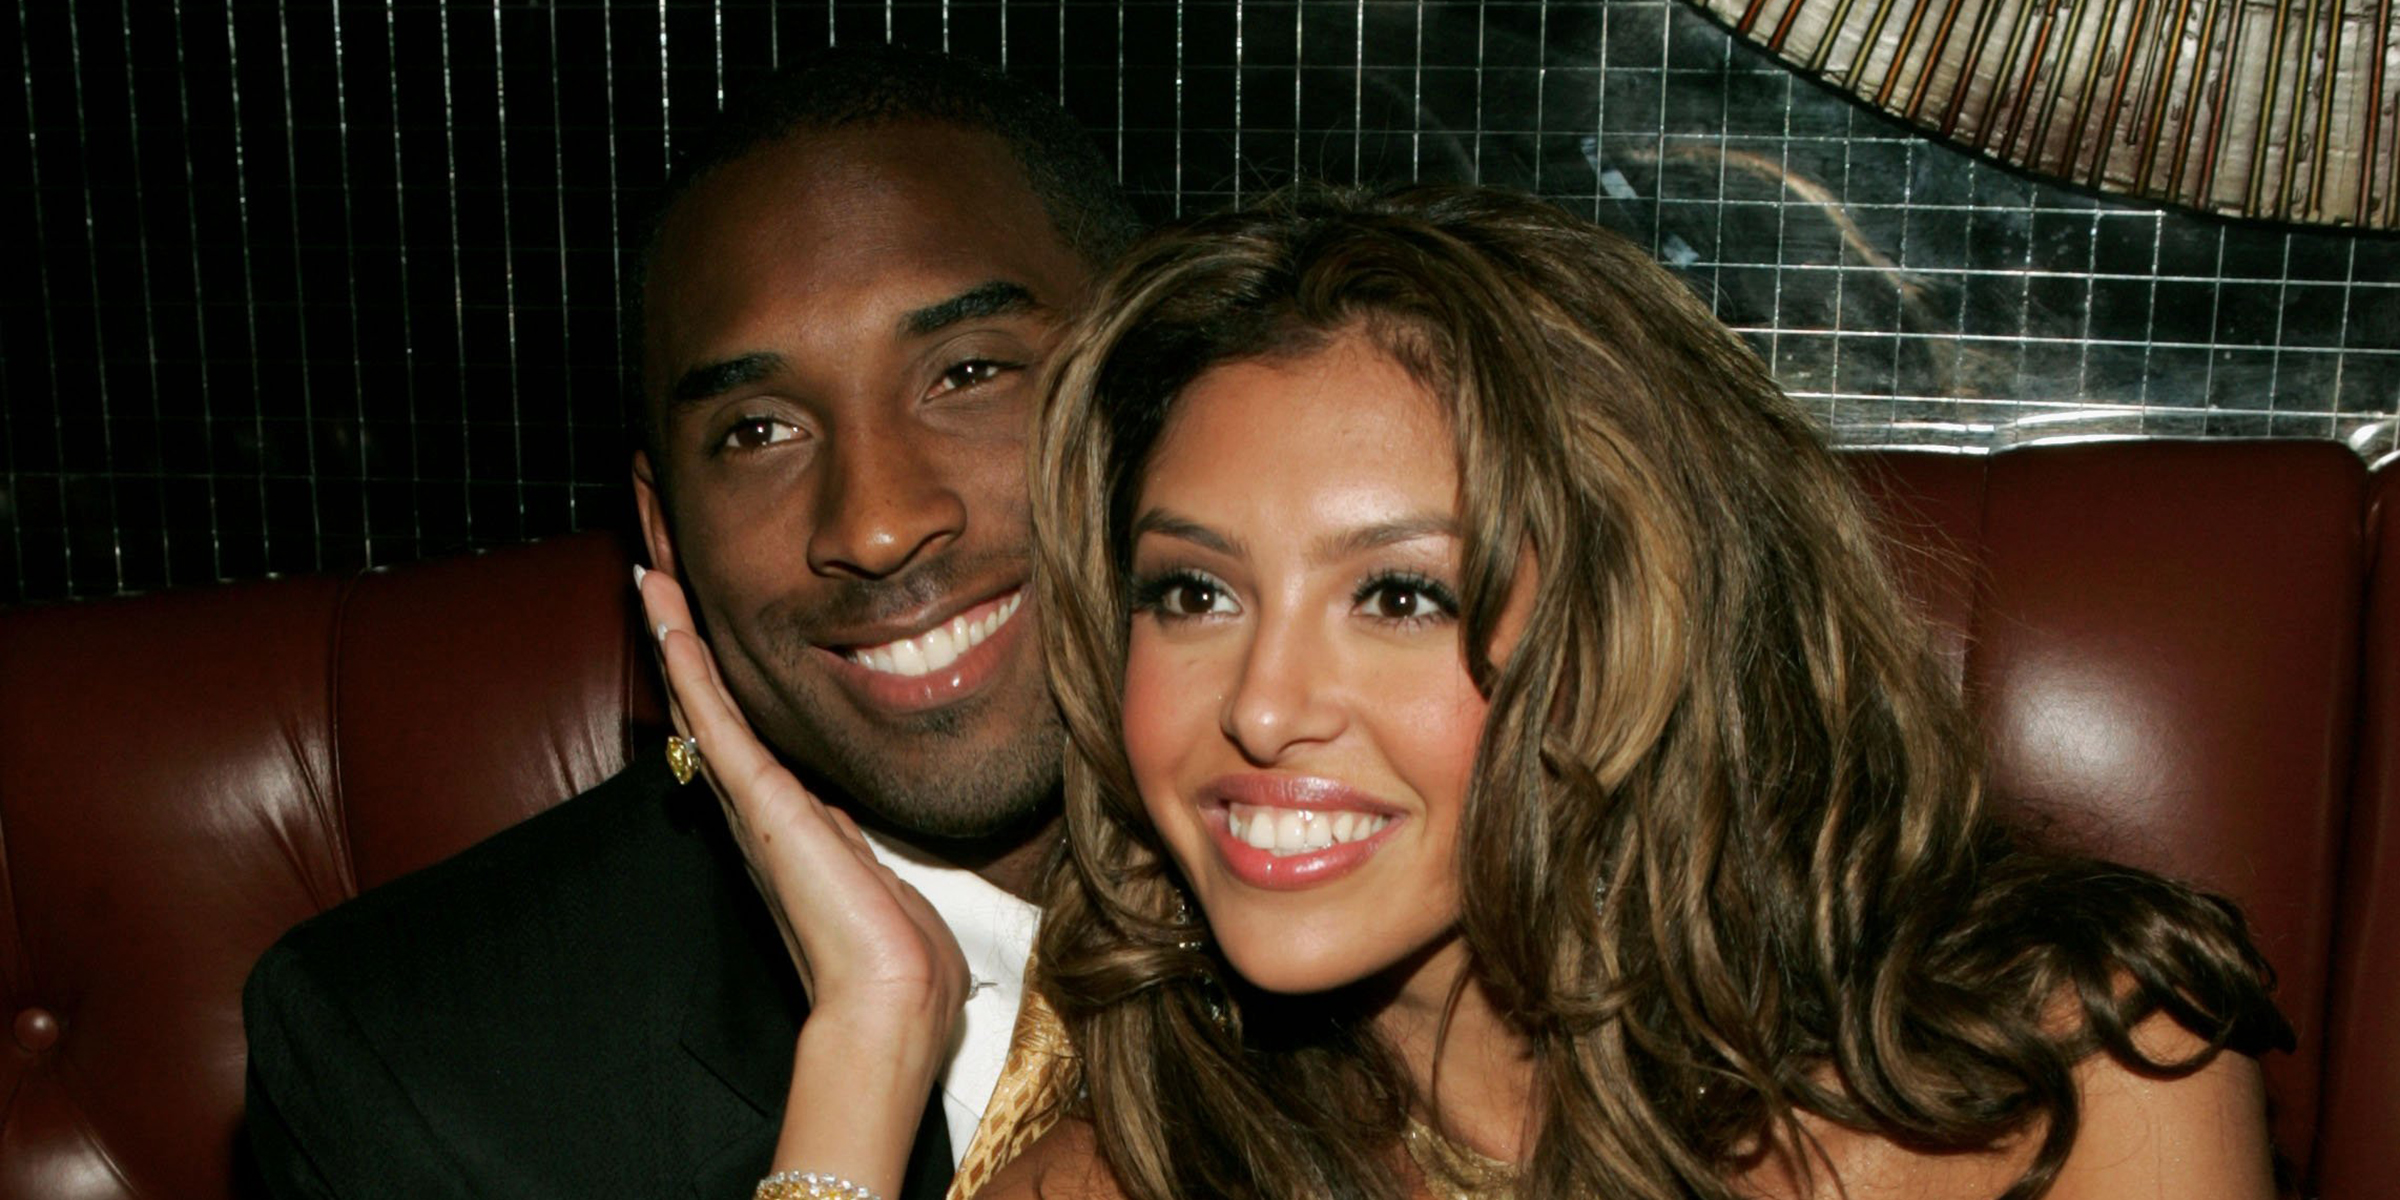 Vanessa Bryant marked the 20th anniversary of her marriage to Kobe with emotional memories